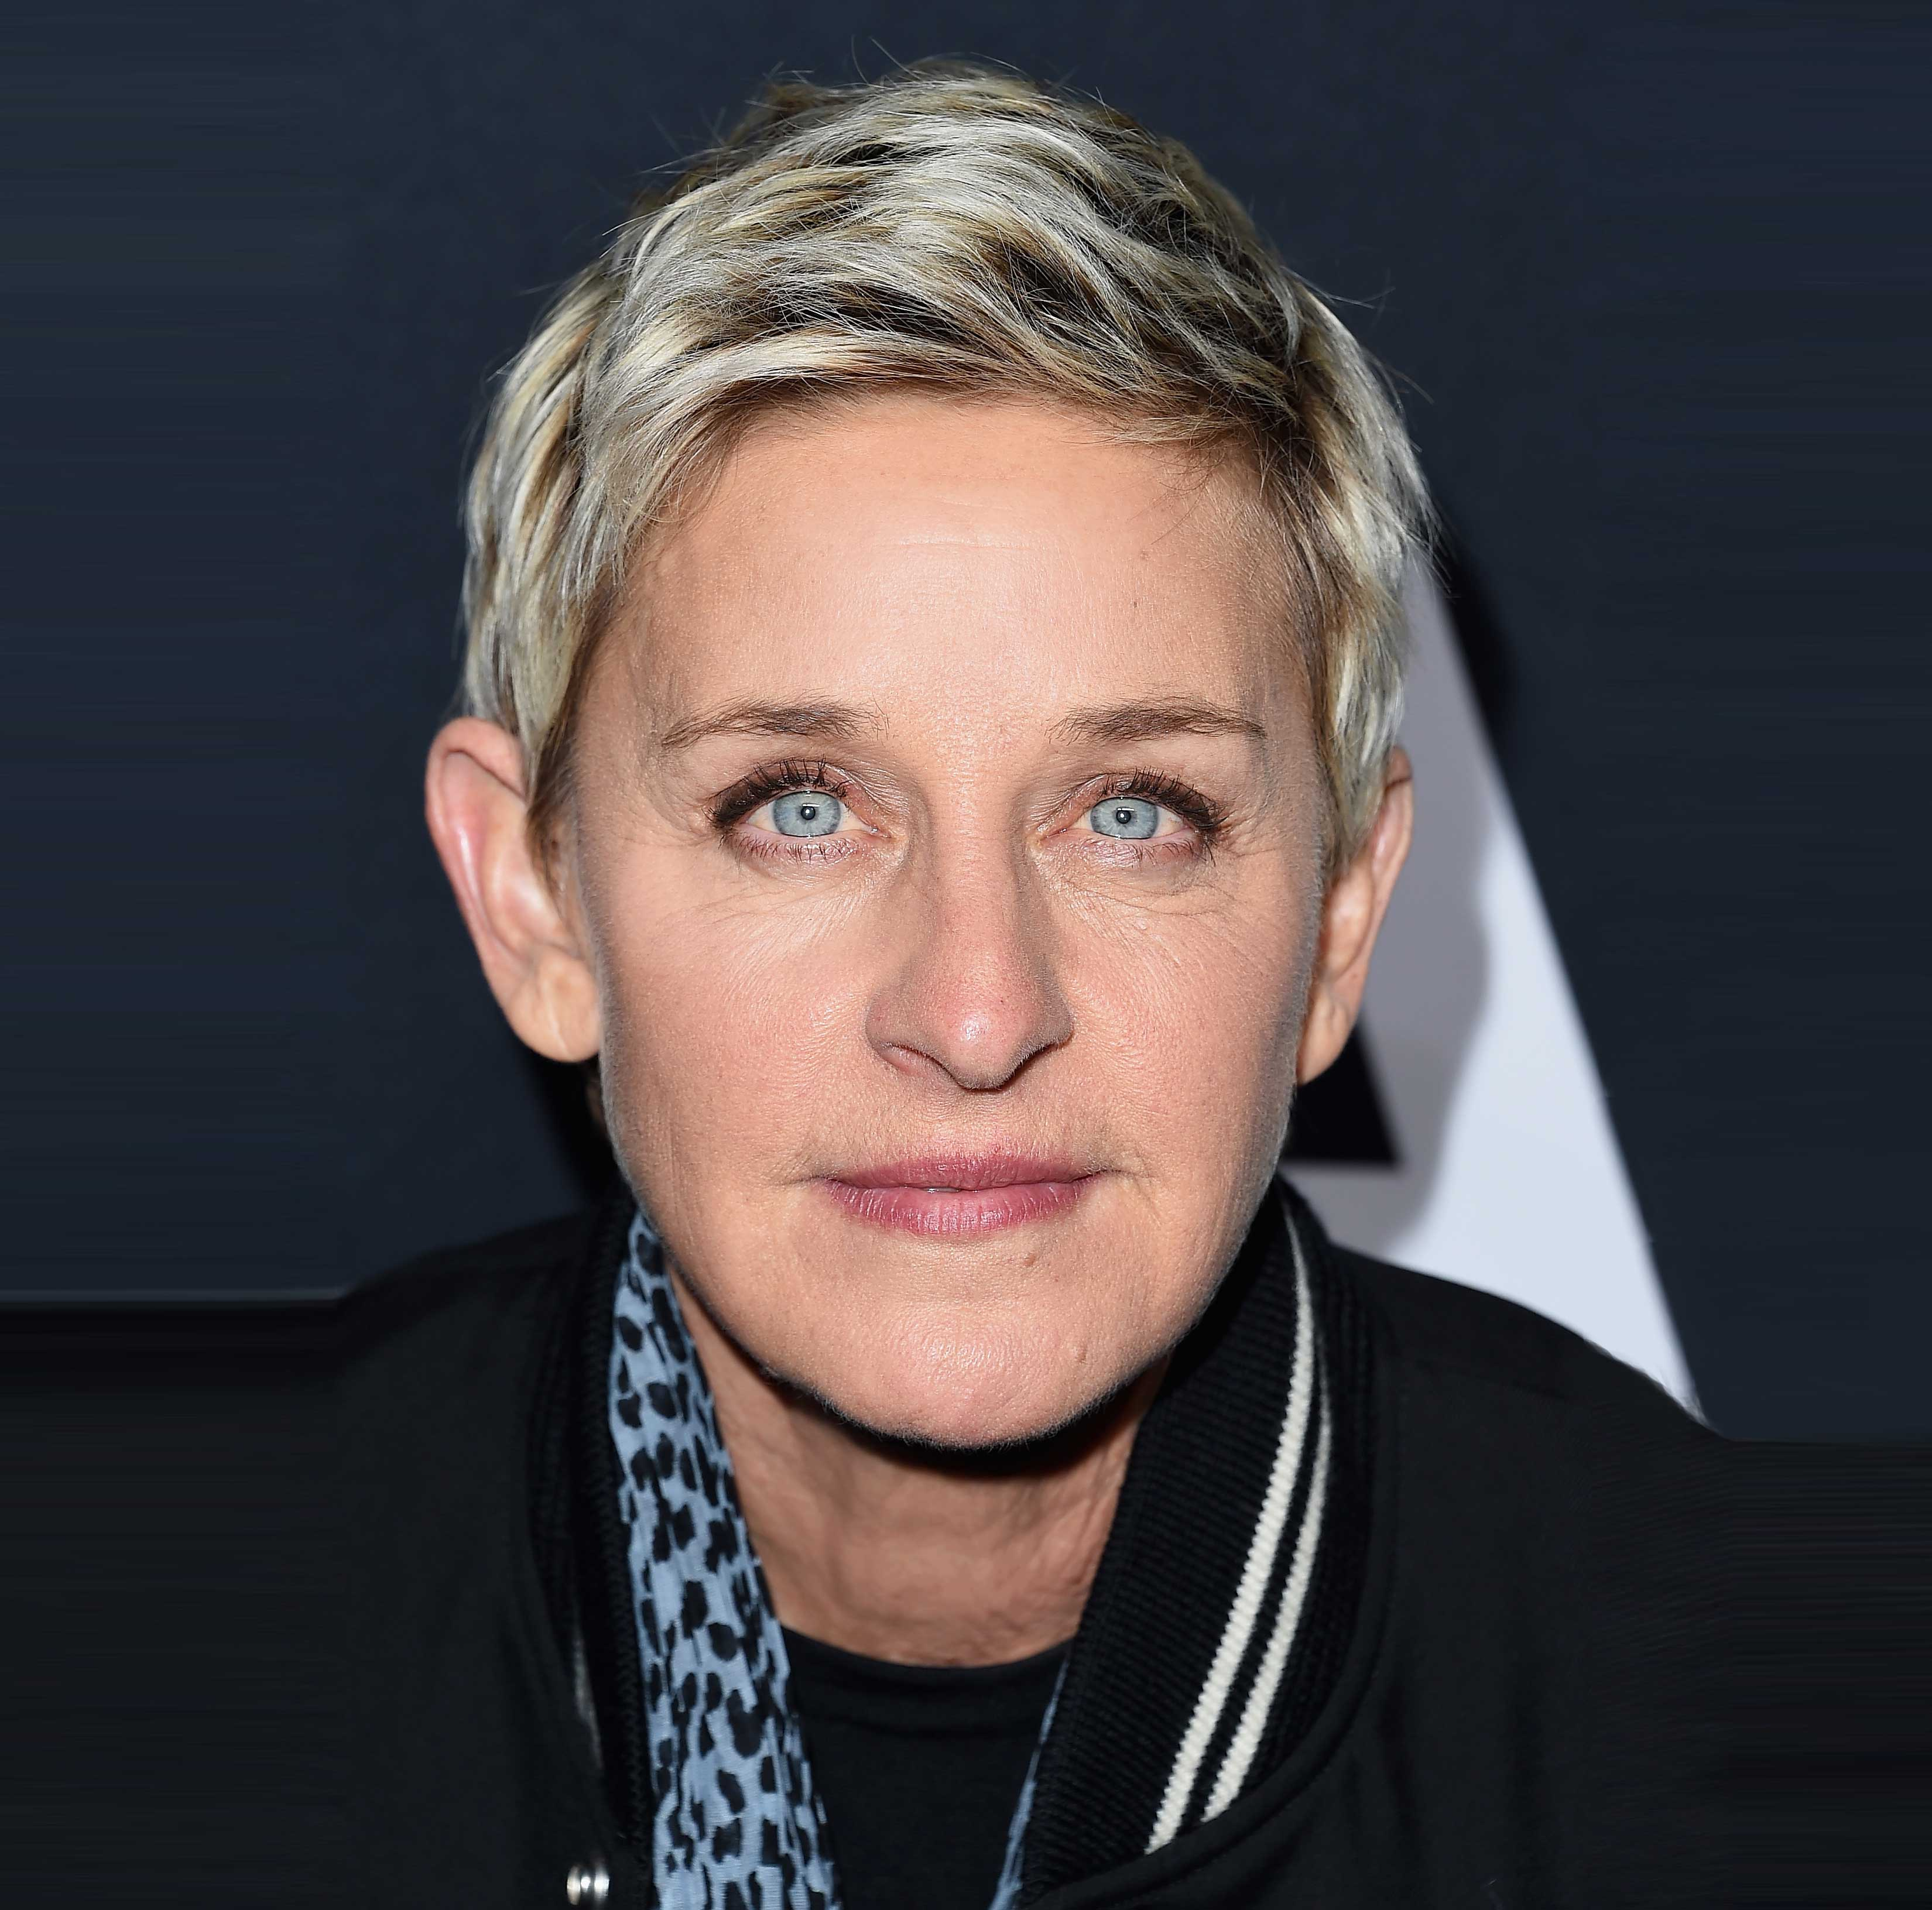 Ellen DeGeneres Opens Up About Bullying She Endured in Hollywood After Coming Out